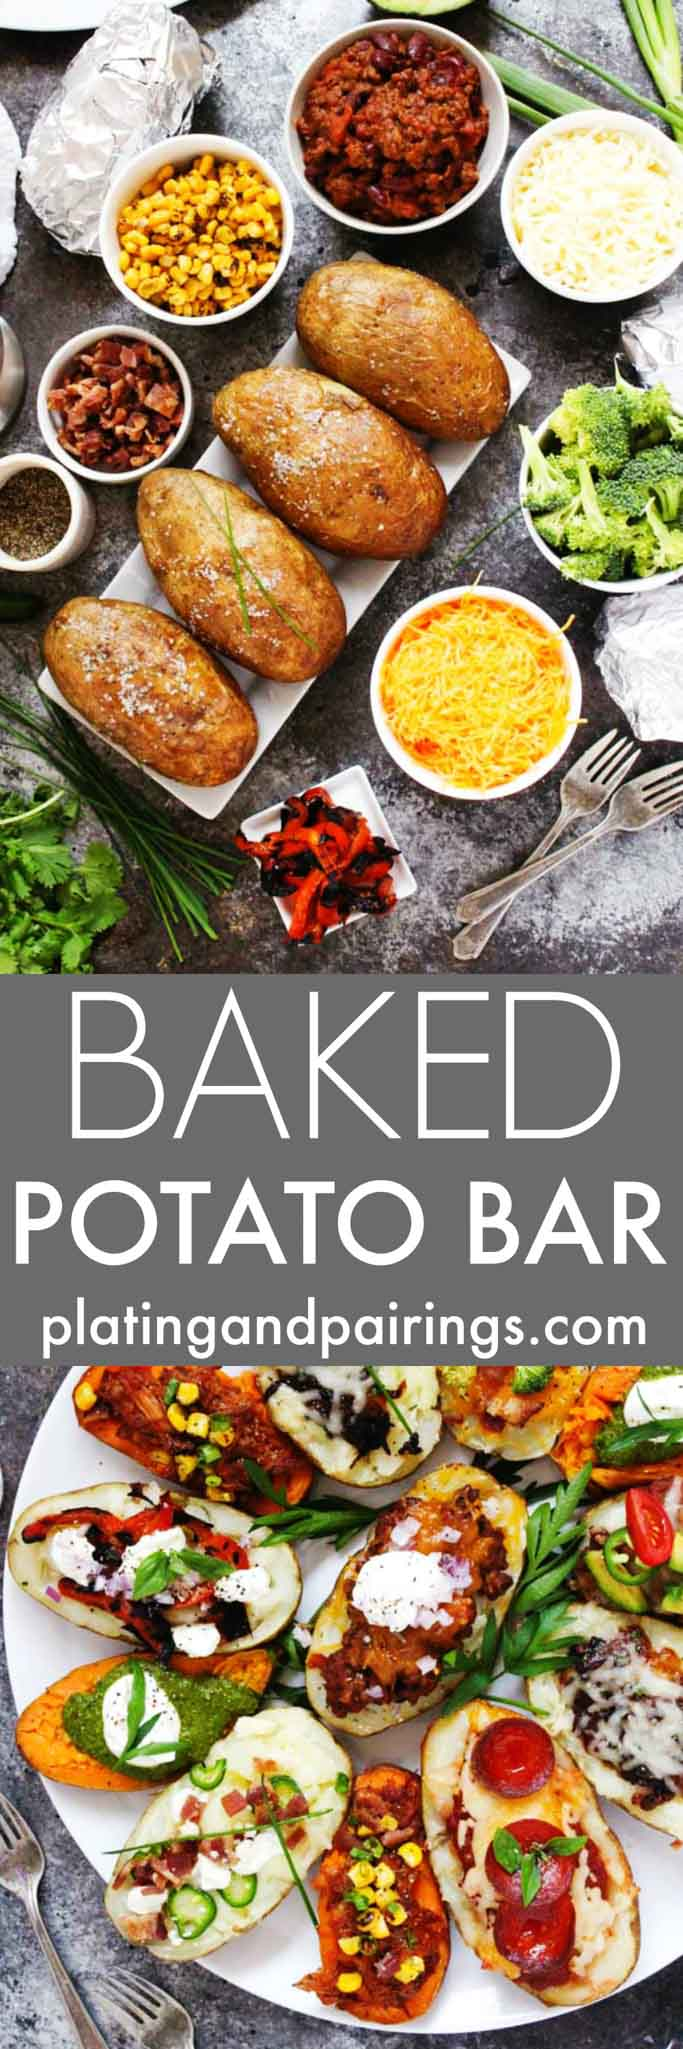 "Create a Grilled ""Baked"" Potato Bar for your next party, potluck or tailgating event. It's a fun and festive way to feed a crowd, and the topping possibilities are endless. 